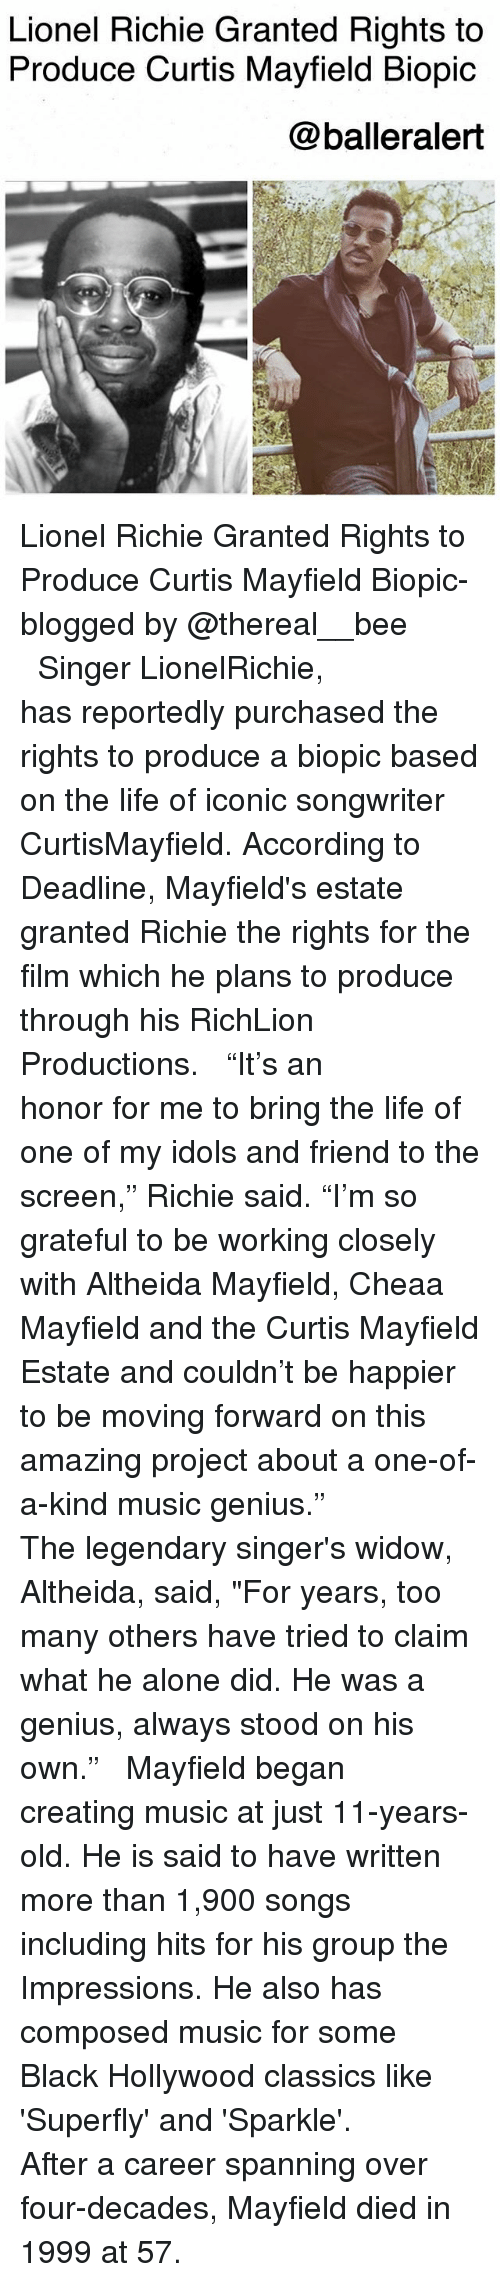 "Being Alone, Life, and Memes: Lionel Richie Granted Rights to  Produce Curtis Mayfield Biopic  @balleralert Lionel Richie Granted Rights to Produce Curtis Mayfield Biopic-blogged by @thereal__bee ⠀⠀⠀⠀⠀⠀⠀⠀⠀ ⠀⠀ Singer LionelRichie, has reportedly purchased the rights to produce a biopic based on the life of iconic songwriter CurtisMayfield. According to Deadline, Mayfield's estate granted Richie the rights for the film which he plans to produce through his RichLion Productions. ⠀⠀⠀⠀⠀⠀⠀⠀⠀ ⠀⠀ ""It's an honor for me to bring the life of one of my idols and friend to the screen,"" Richie said. ""I'm so grateful to be working closely with Altheida Mayfield, Cheaa Mayfield and the Curtis Mayfield Estate and couldn't be happier to be moving forward on this amazing project about a one-of-a-kind music genius."" ⠀⠀⠀⠀⠀⠀⠀⠀⠀ ⠀⠀ The legendary singer's widow, Altheida, said, ""For years, too many others have tried to claim what he alone did. He was a genius, always stood on his own."" ⠀⠀⠀⠀⠀⠀⠀⠀⠀ ⠀⠀ Mayfield began creating music at just 11-years-old. He is said to have written more than 1,900 songs including hits for his group the Impressions. He also has composed music for some Black Hollywood classics like 'Superfly' and 'Sparkle'. ⠀⠀⠀⠀⠀⠀⠀⠀⠀ ⠀⠀ After a career spanning over four-decades, Mayfield died in 1999 at 57."